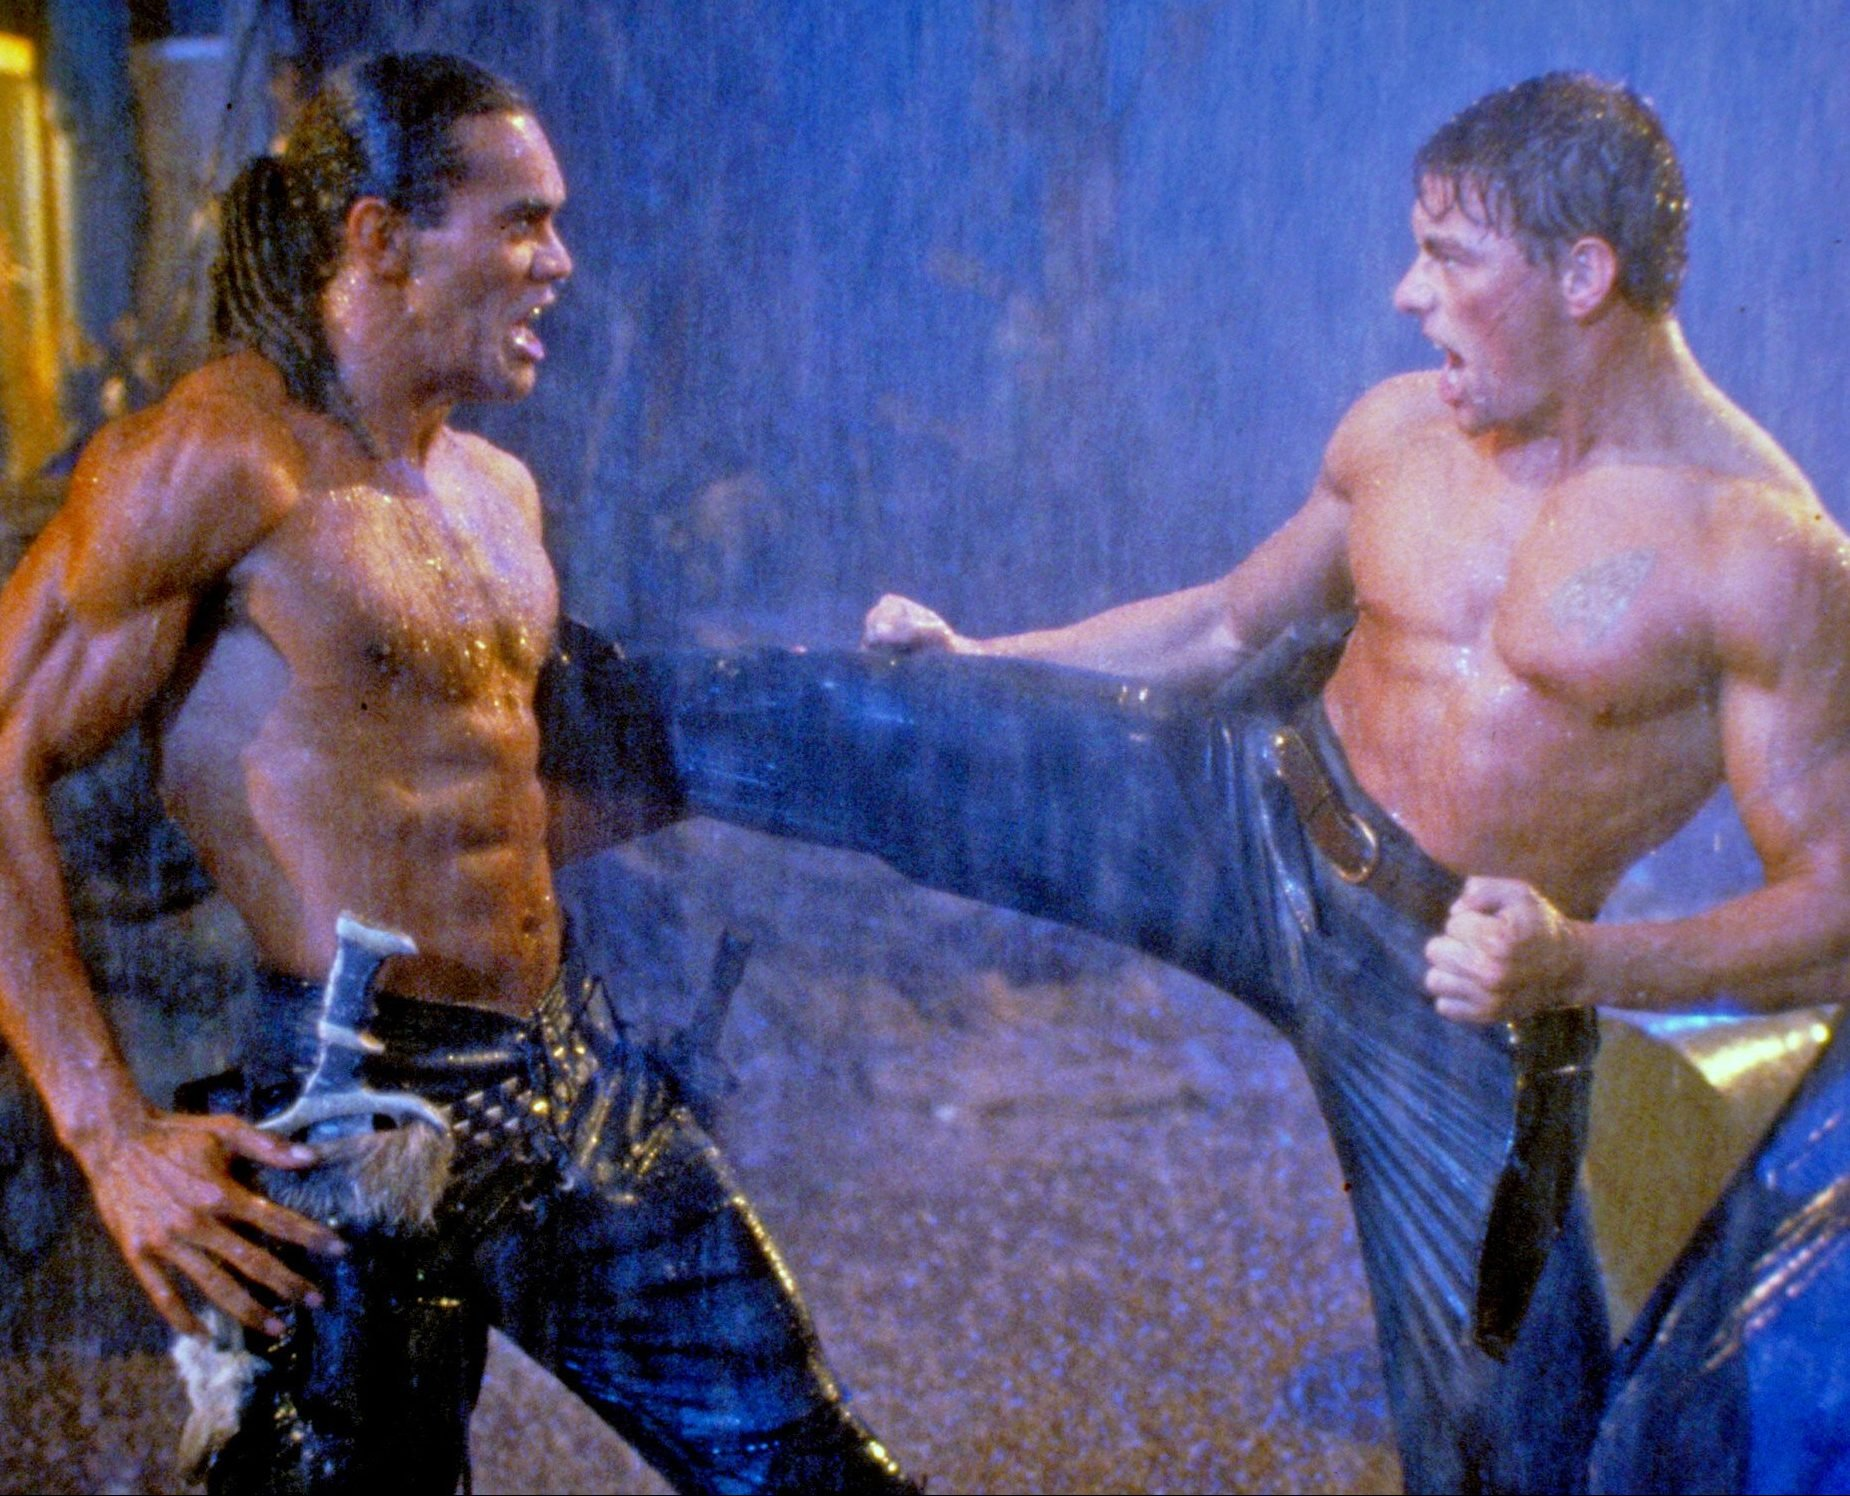 7FKFHXMUVVH5FIVXZ7YHC3OCLE e1621851790903 25 Things You Probably Didn't Know About Jean-Claude Van Damme